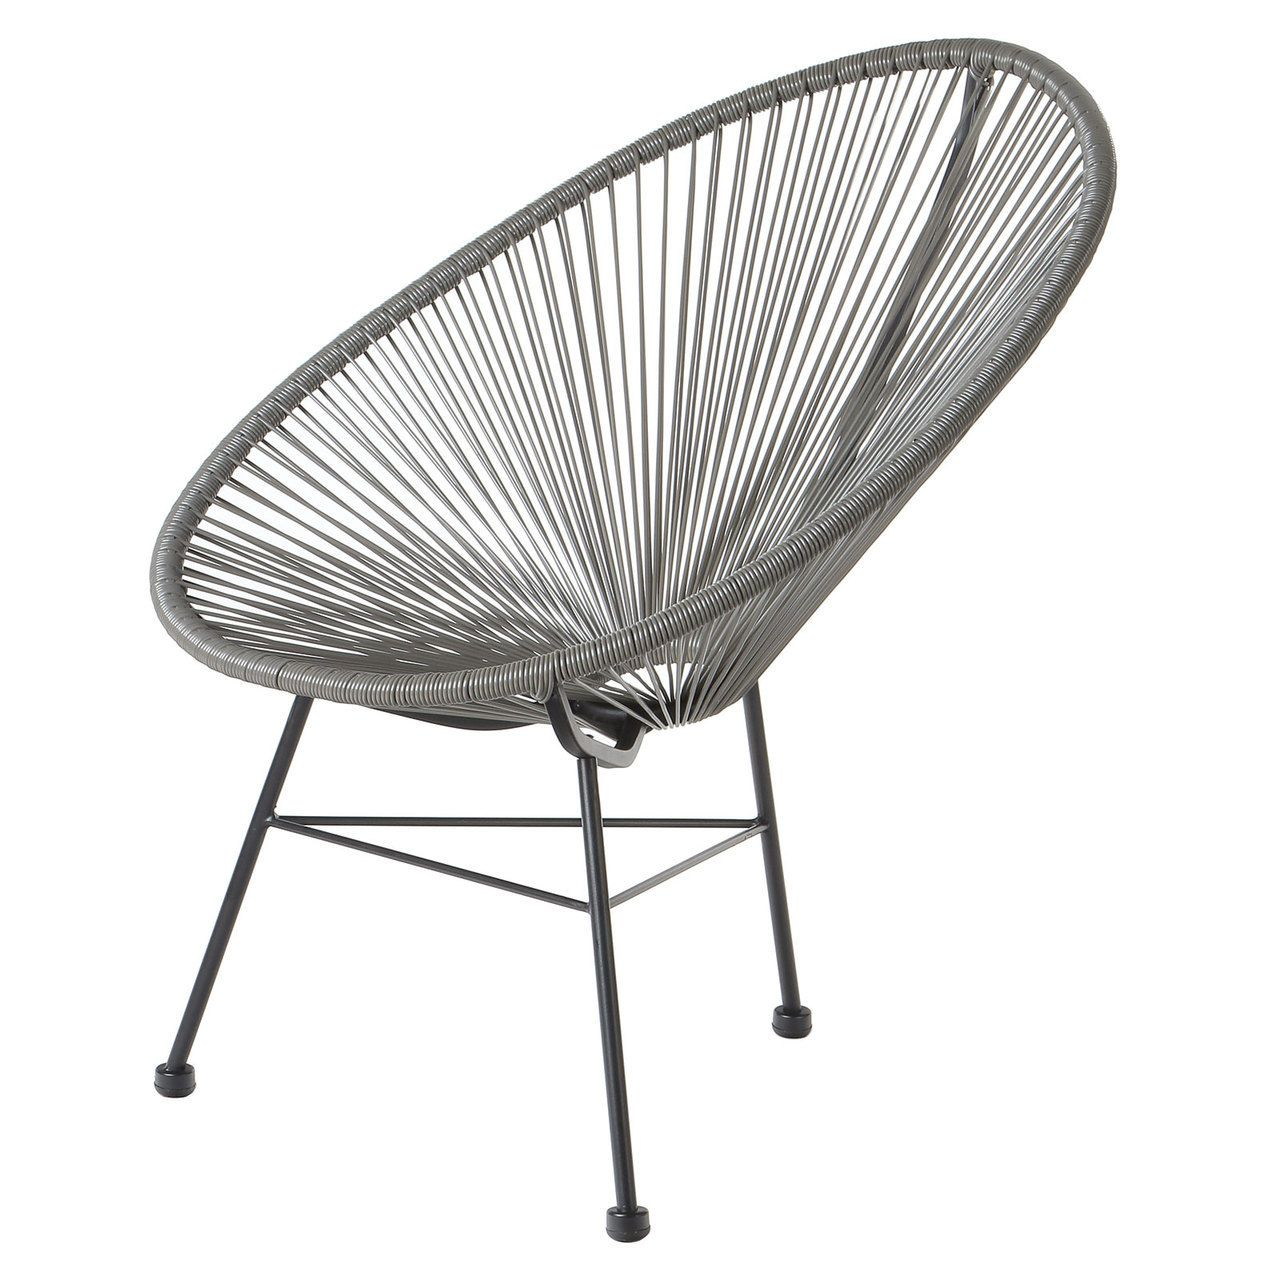 Acapulco Lounge Chair - Grey, Wire Basket Patio Chair ...